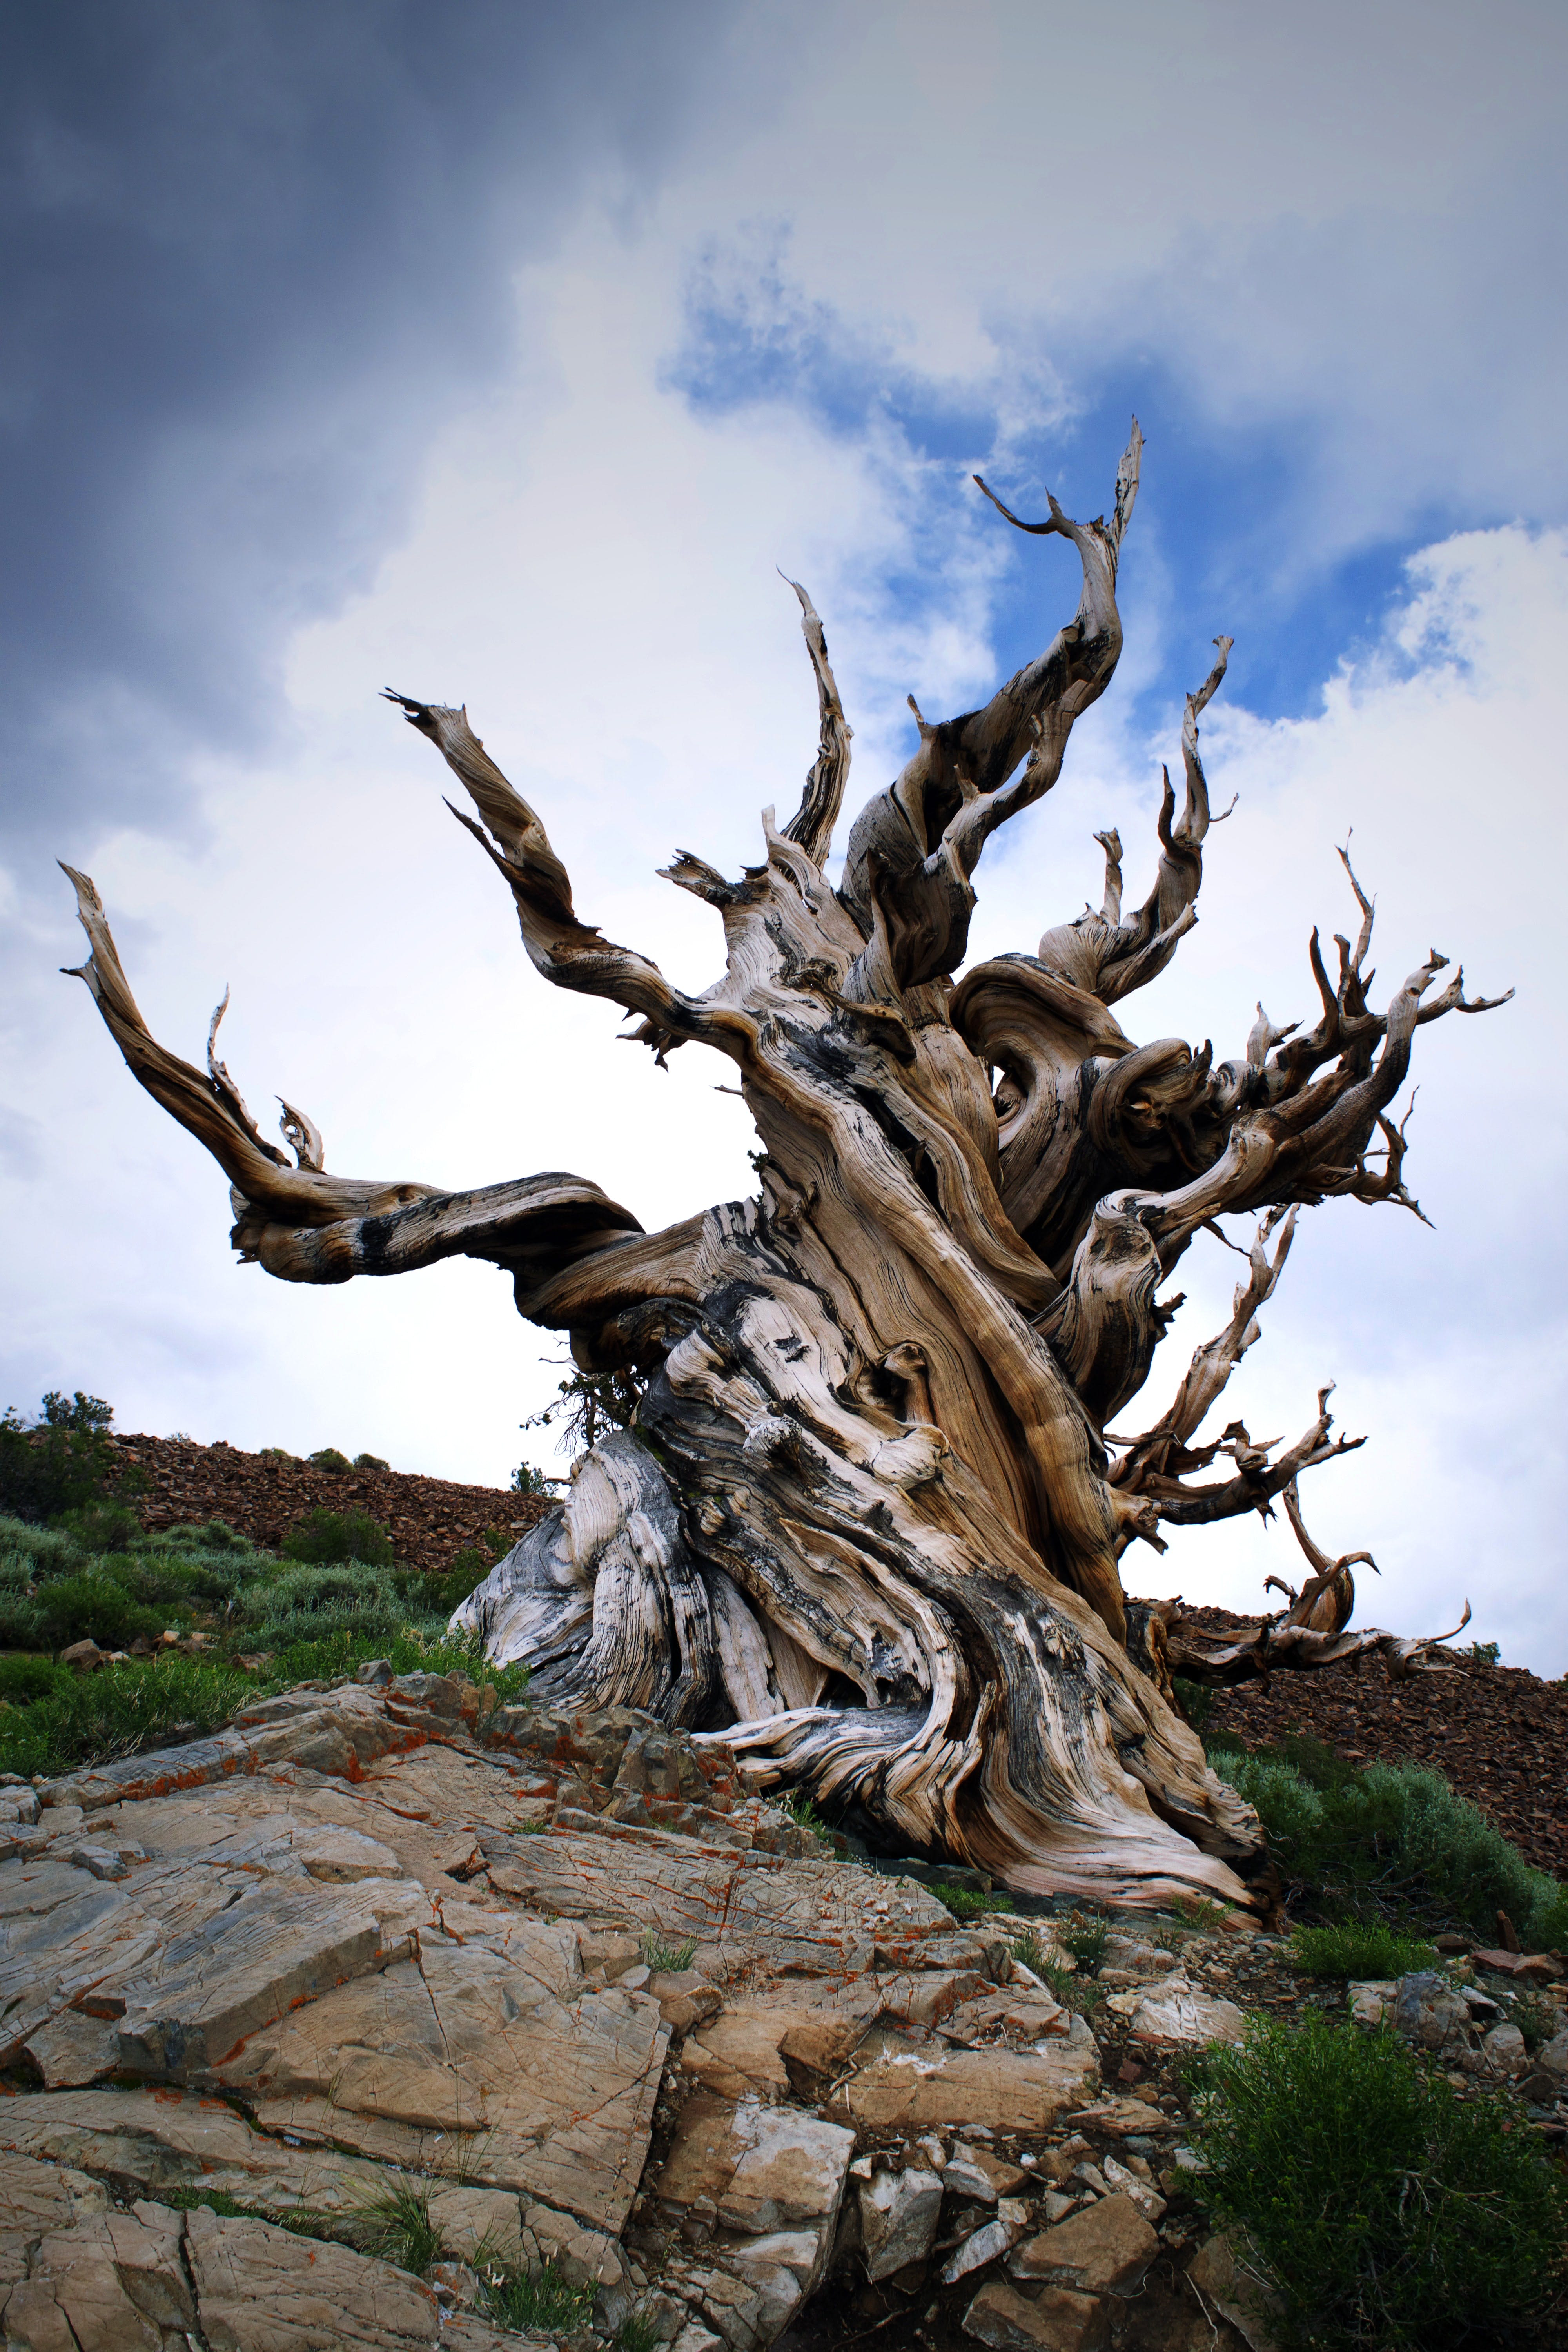 gnarled old bristlecone pine tree growing on a rock